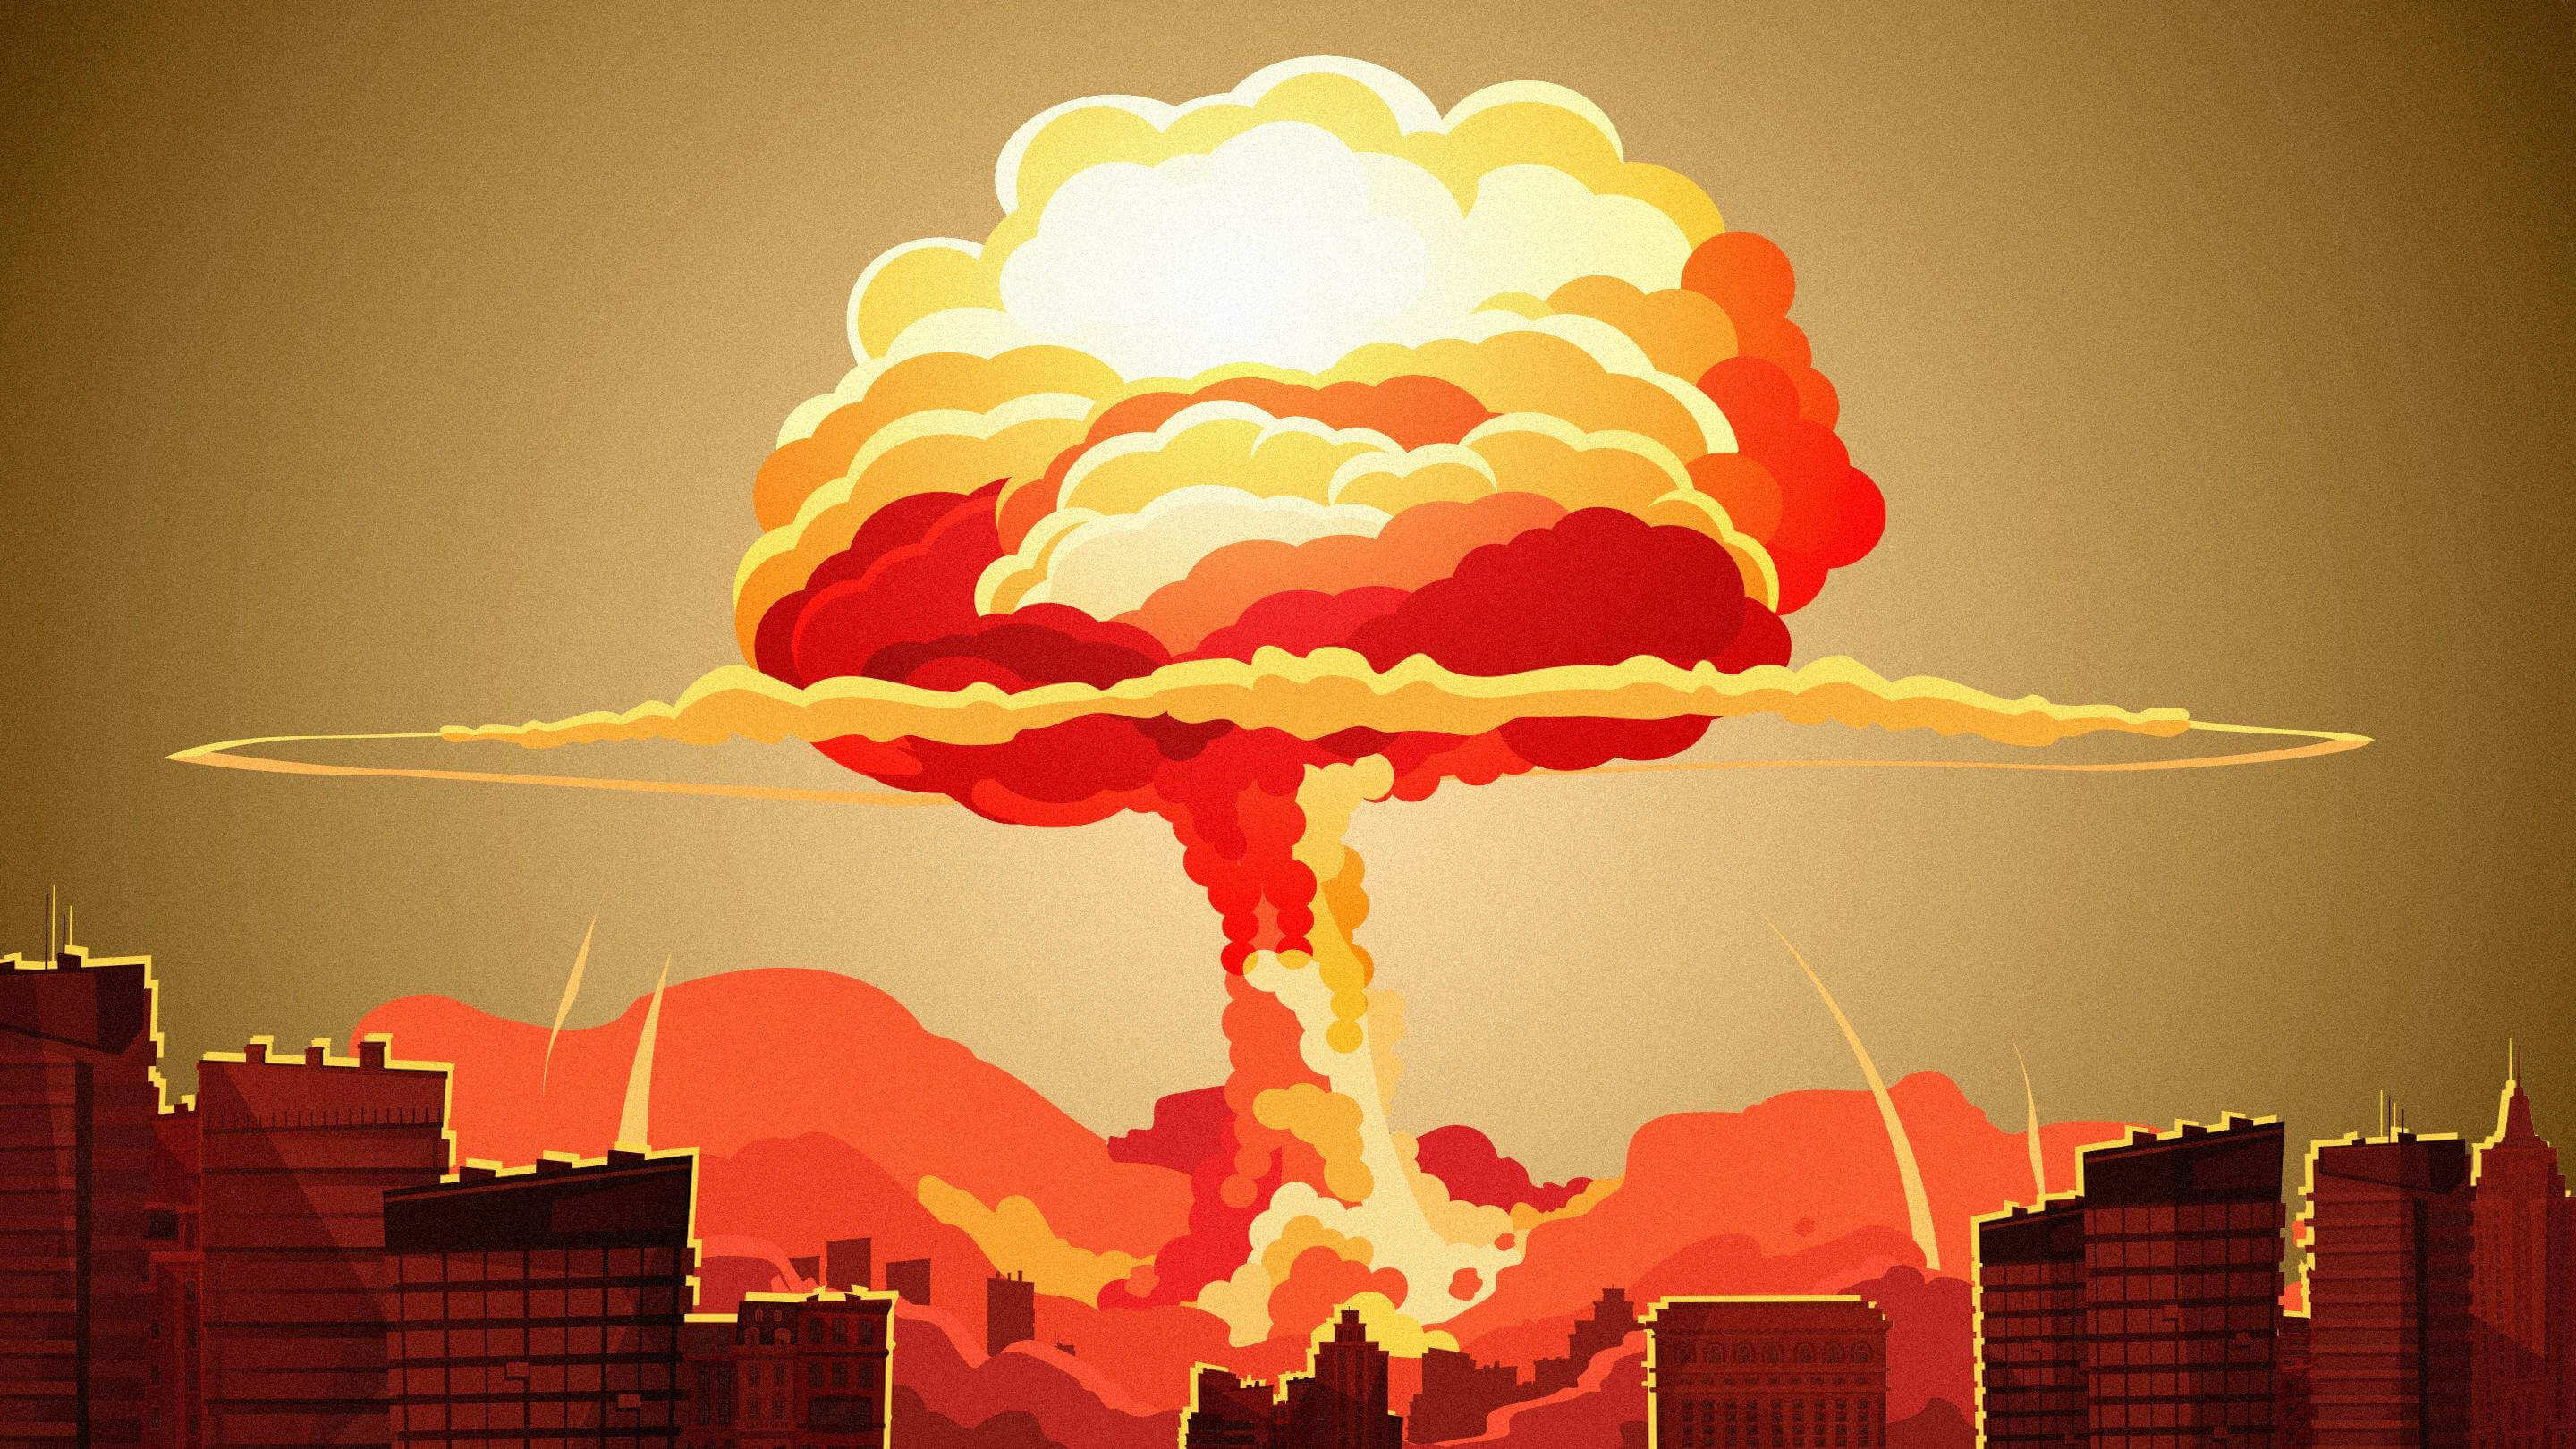 #video | What will happen to the planet after a nuclear war?